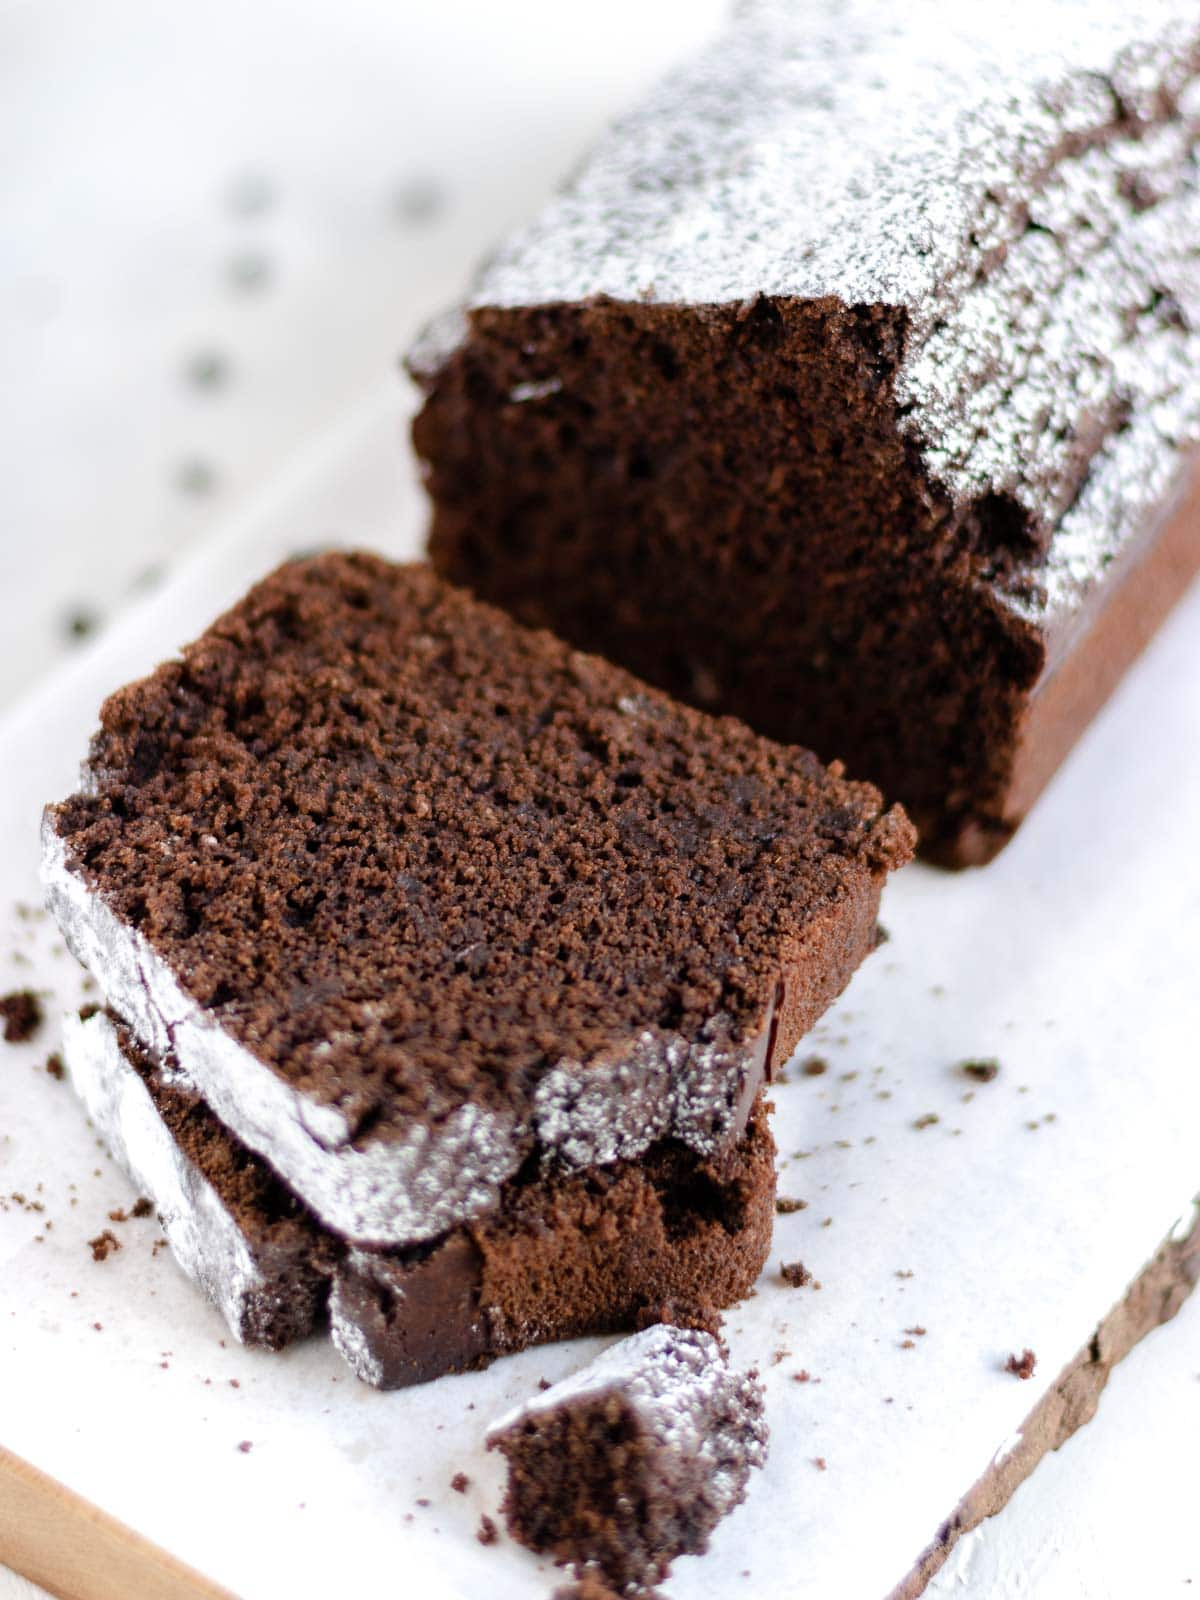 slices of chocolate pound cake